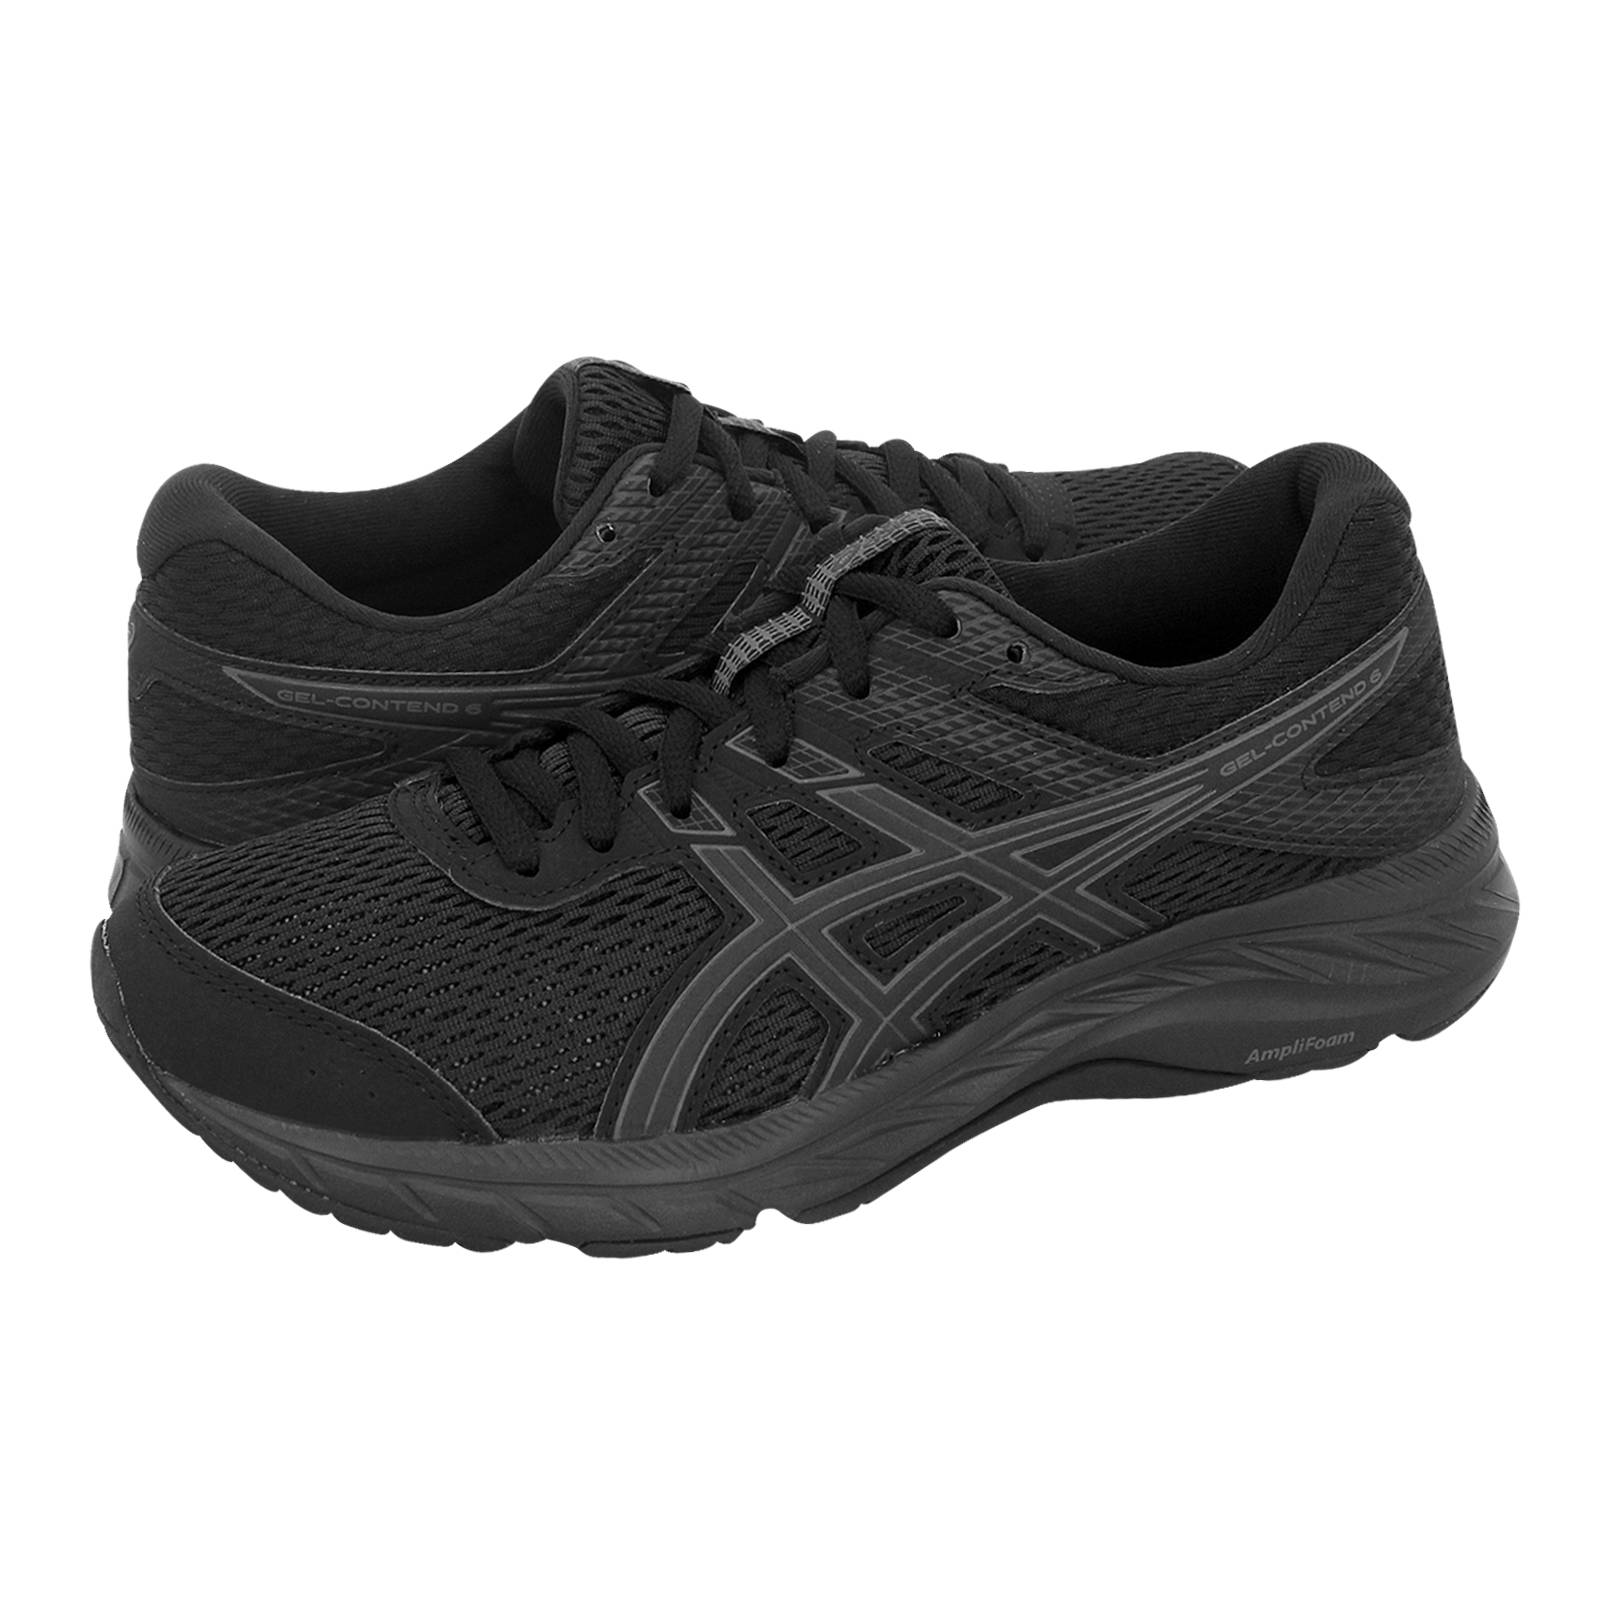 Asics Gel Contend 6 athletic shoes